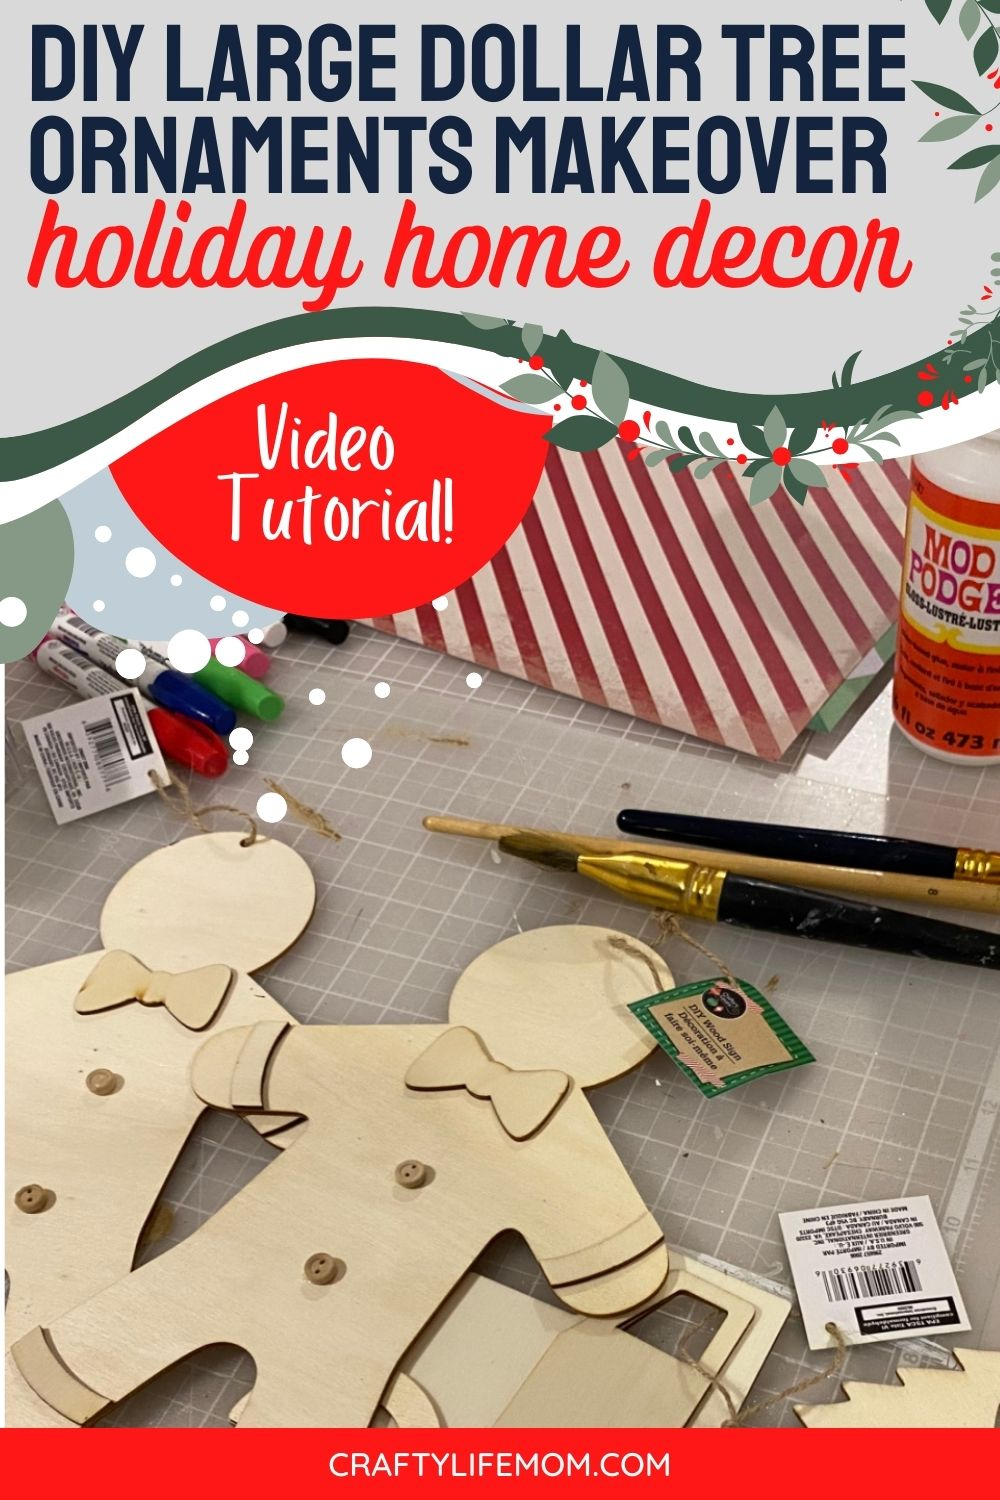 Create Large Dollar Tree Ornaments to hang your Christmas tree for focal point decor. This DIY decor adds variety to your tree and can be personalized to create a look of your own.